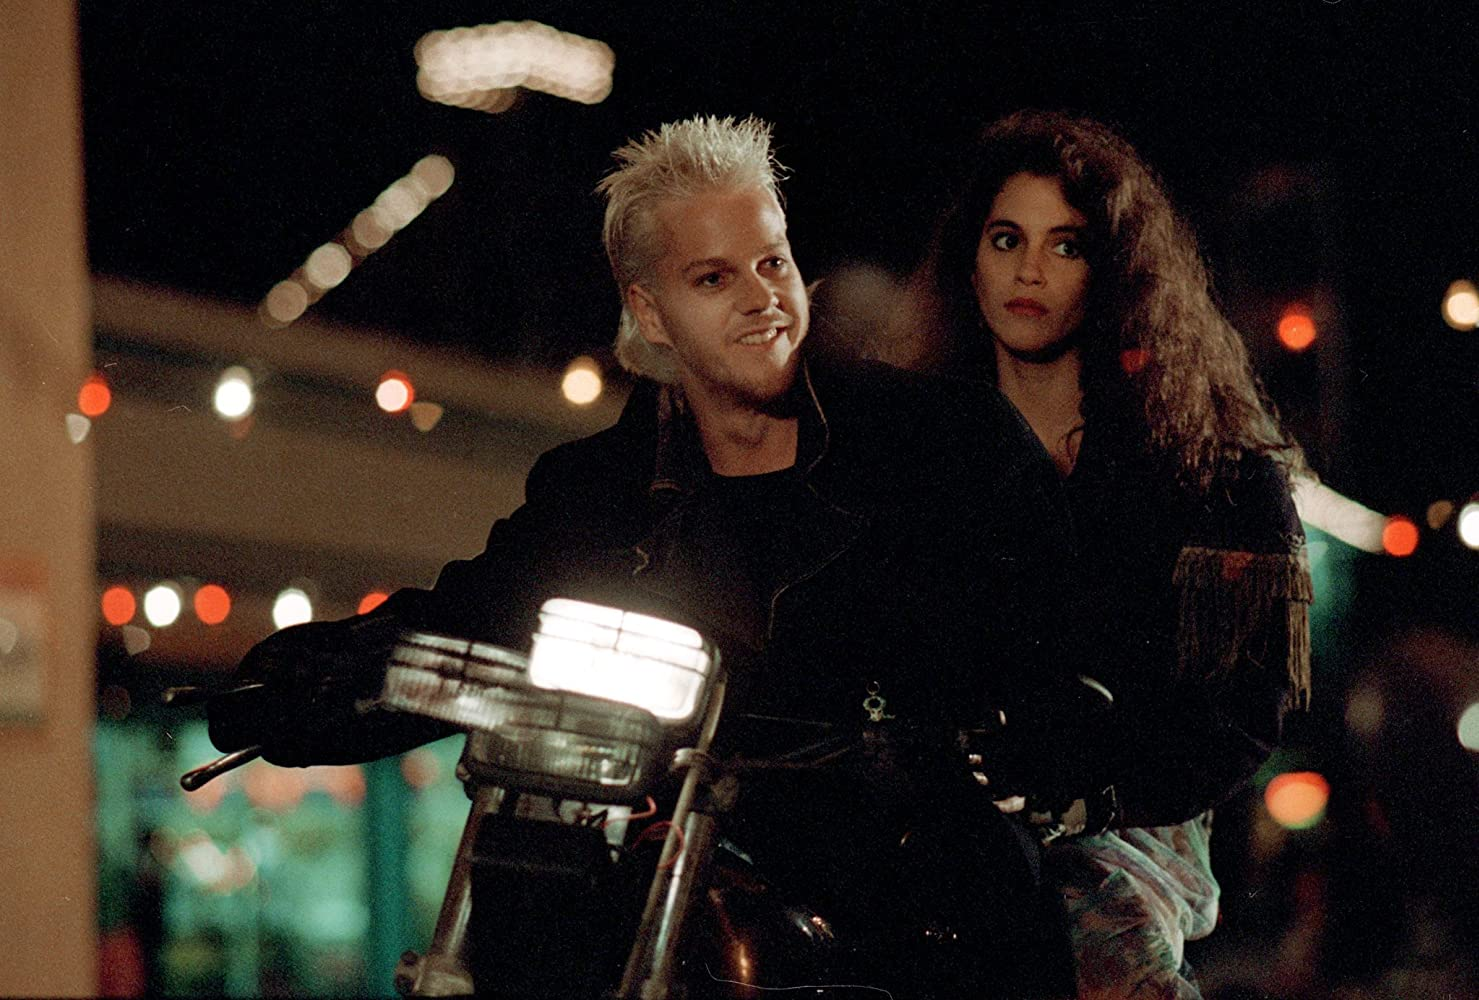 Jami Gertz and Kiefer Sutherland in The Lost Boys (1987)